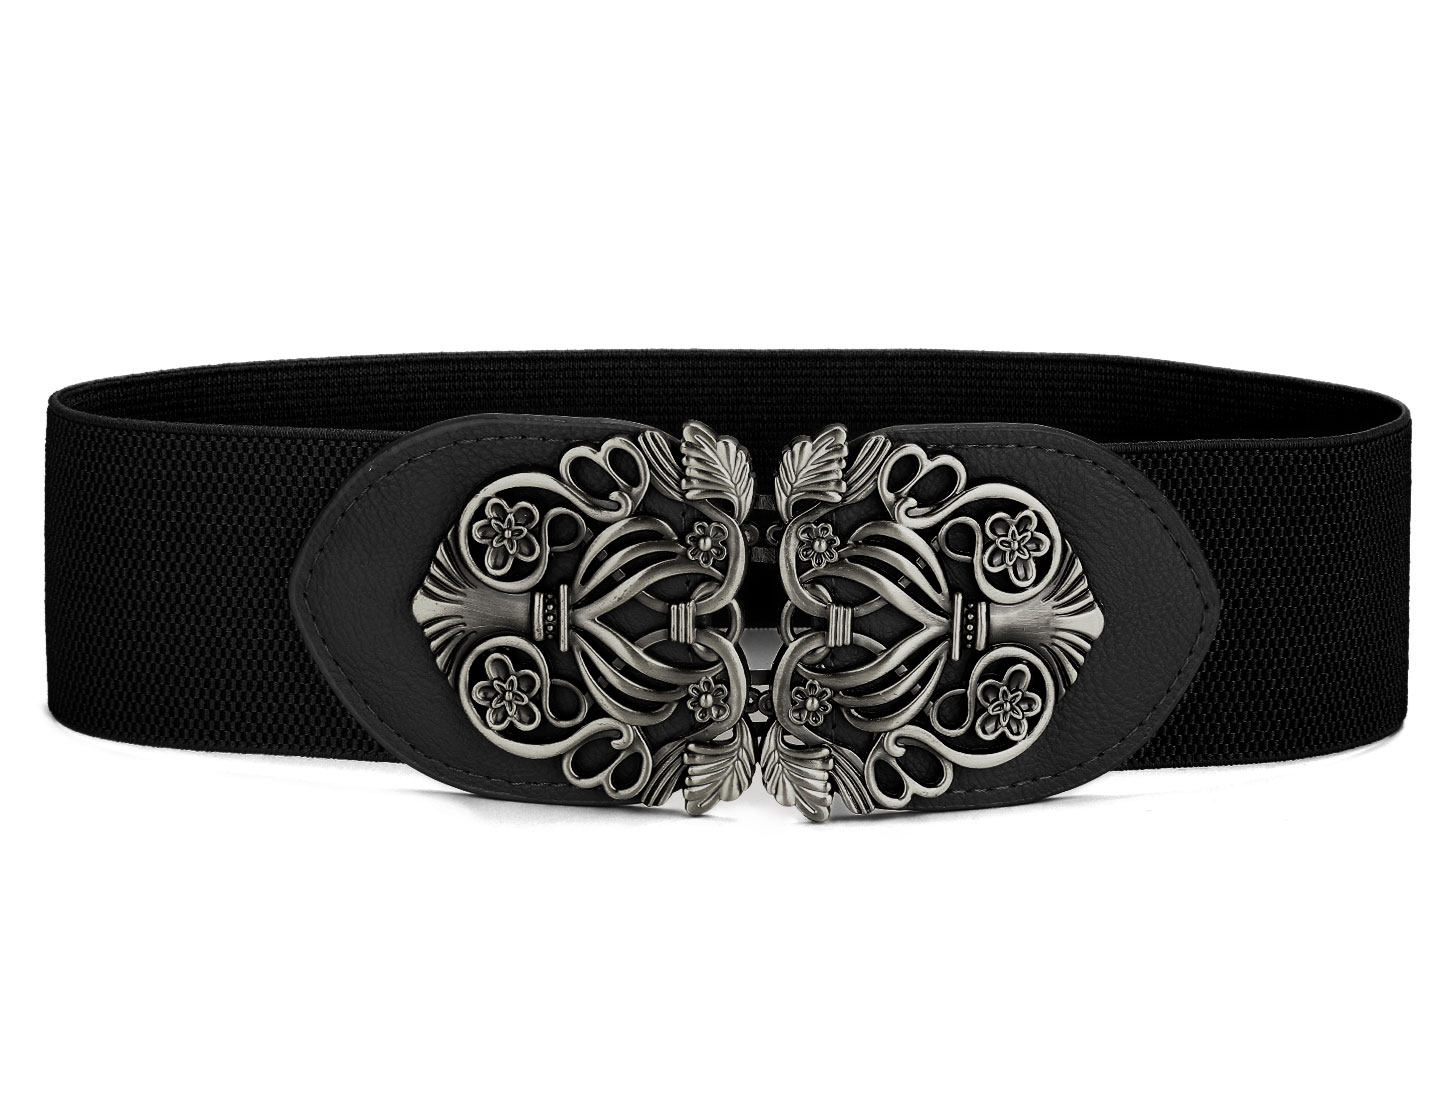 Girl Lady Faux Leather Interlocking Buckle Elastic Cinch Waist Belt Black